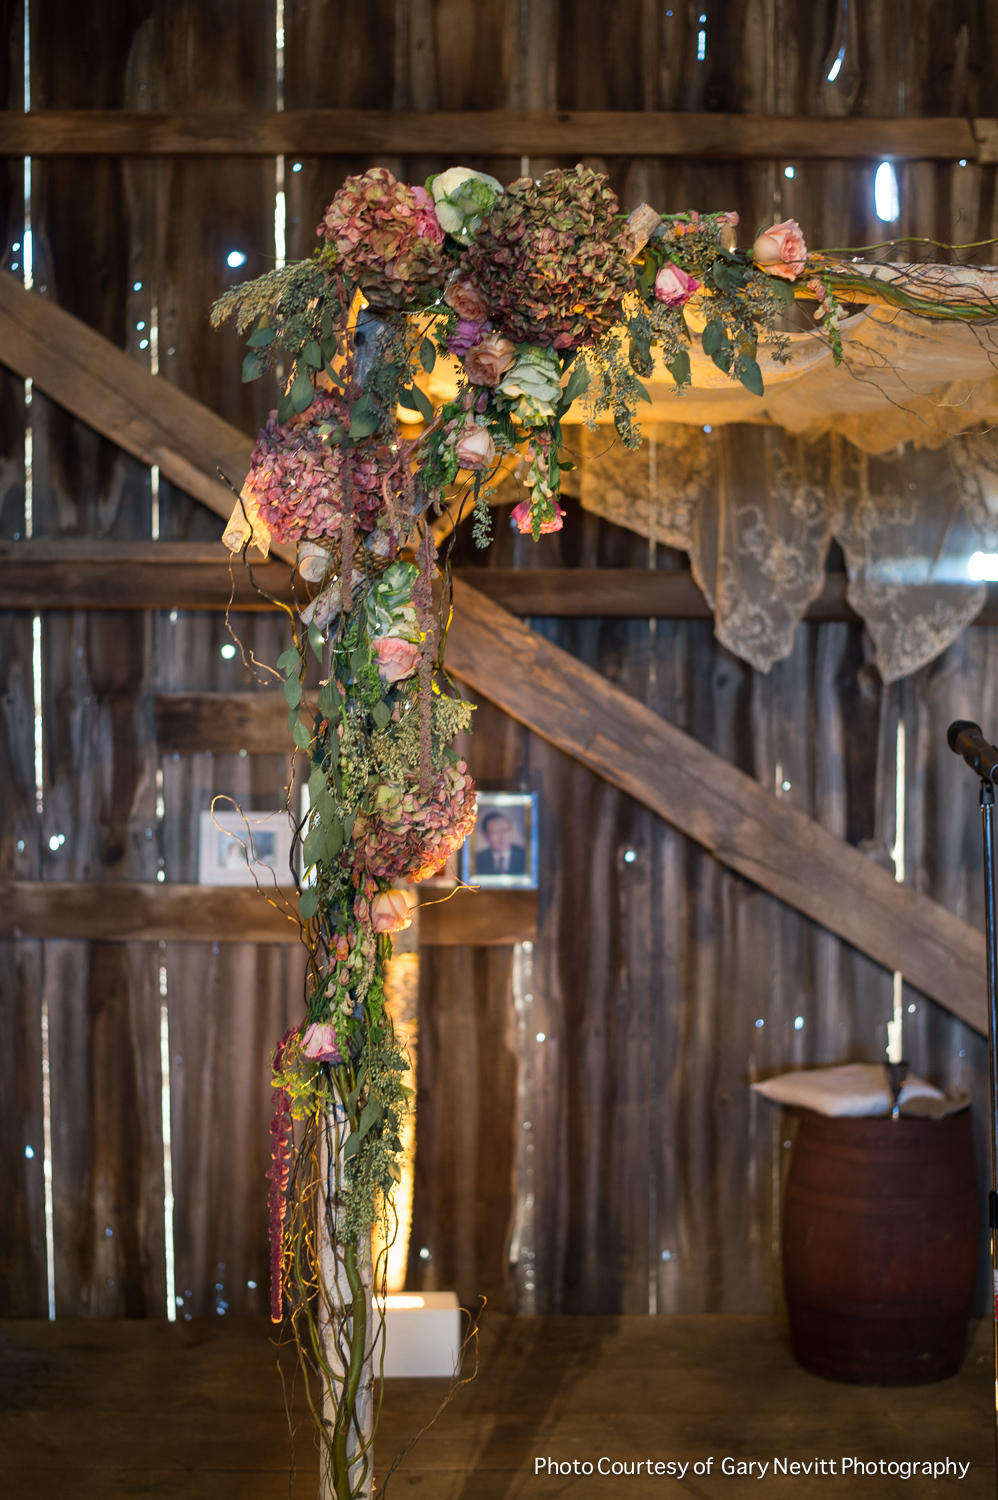 19 Philadelphia Wedding Birch Chuppah Philadelphia Wedding Florist Antique Hydrangea Barn Wedding.jpg